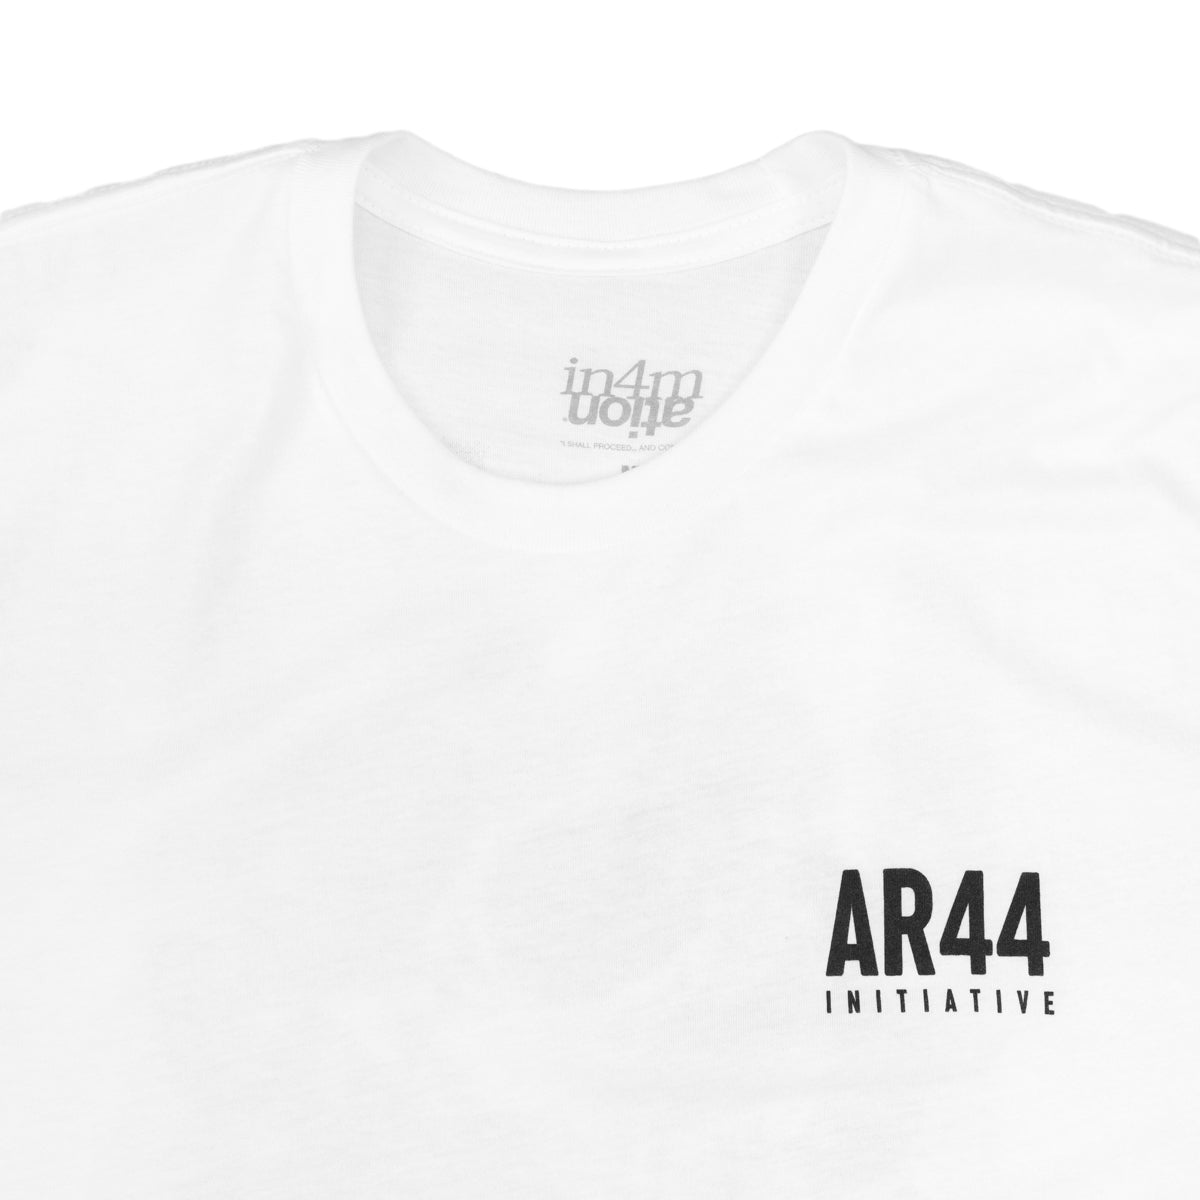 AR44 INITIATIVE - SILENCE (WHITE)